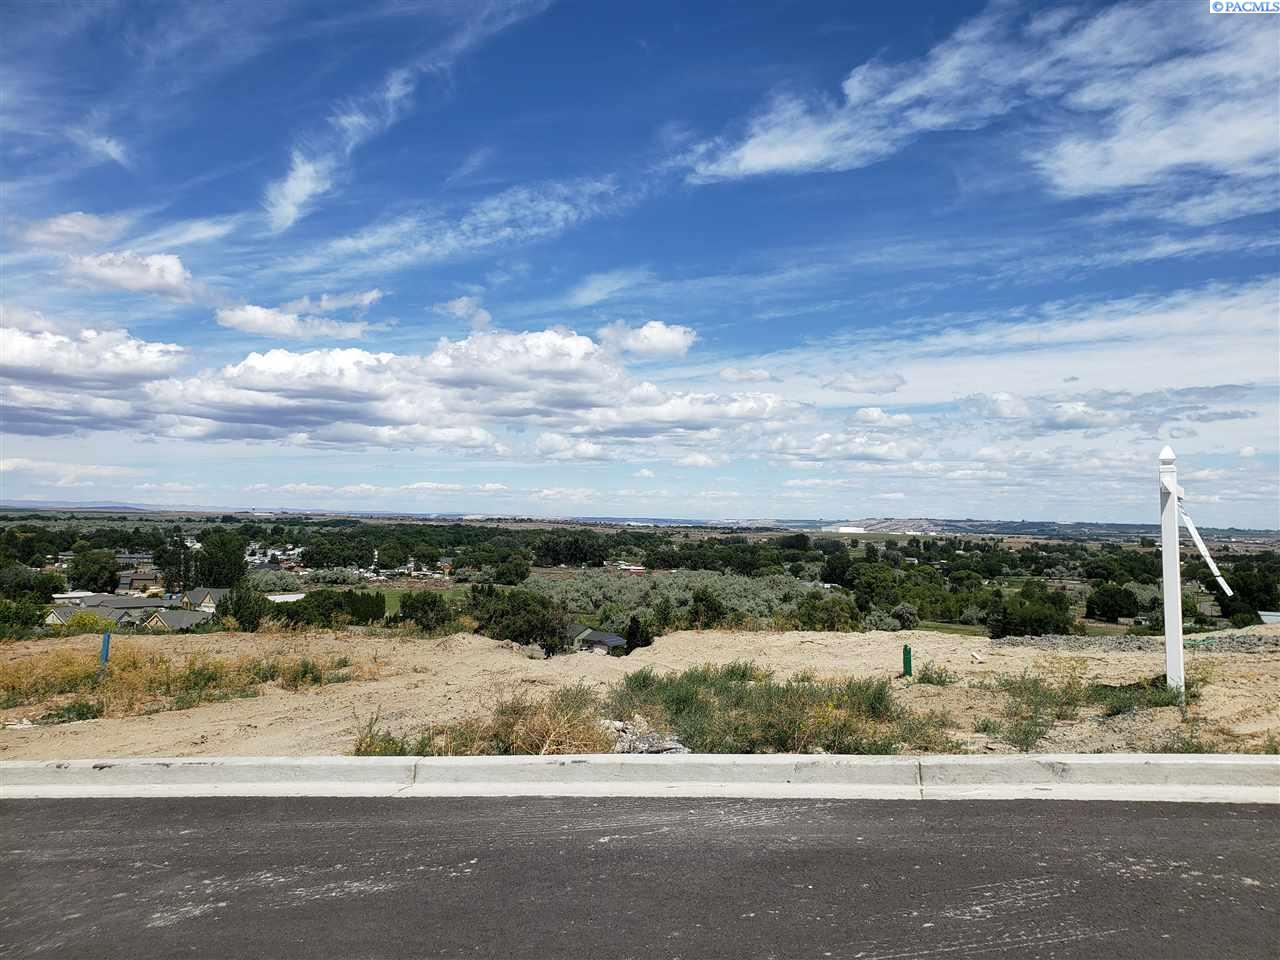 Single Family Homes for Sale at Lot 32 Orchard Street West Richland, Washington 99353 United States